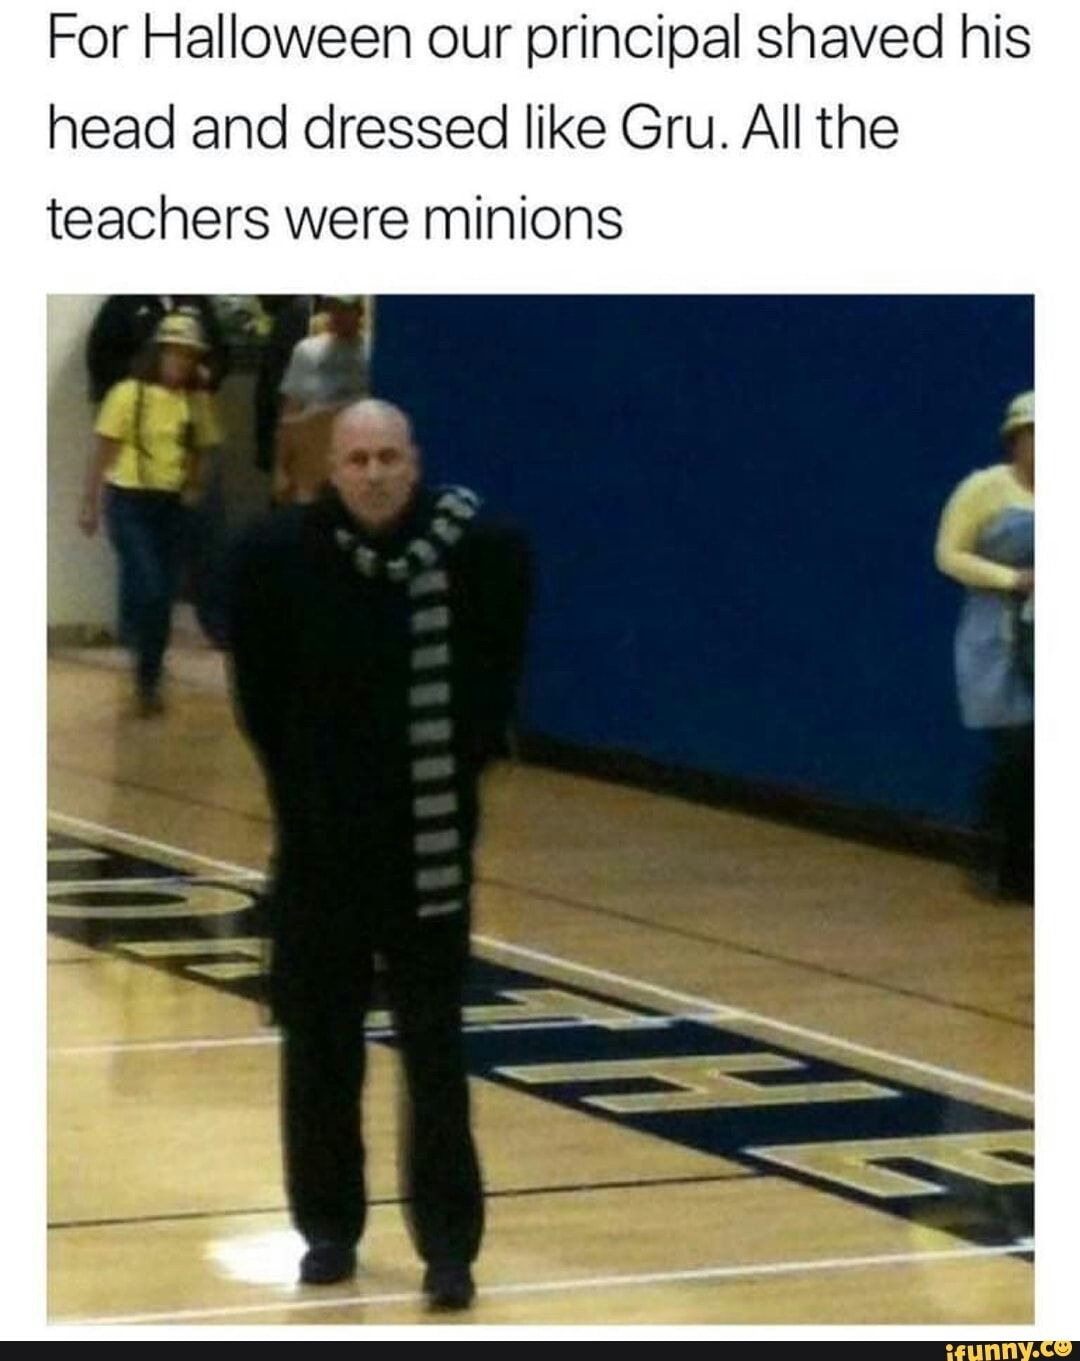 For Halloween Our Principal Shaved His Head And Dressed Like Gru All The Teachers Were Minions Ifunny Really Funny Memes Stupid Funny Memes Really Funny